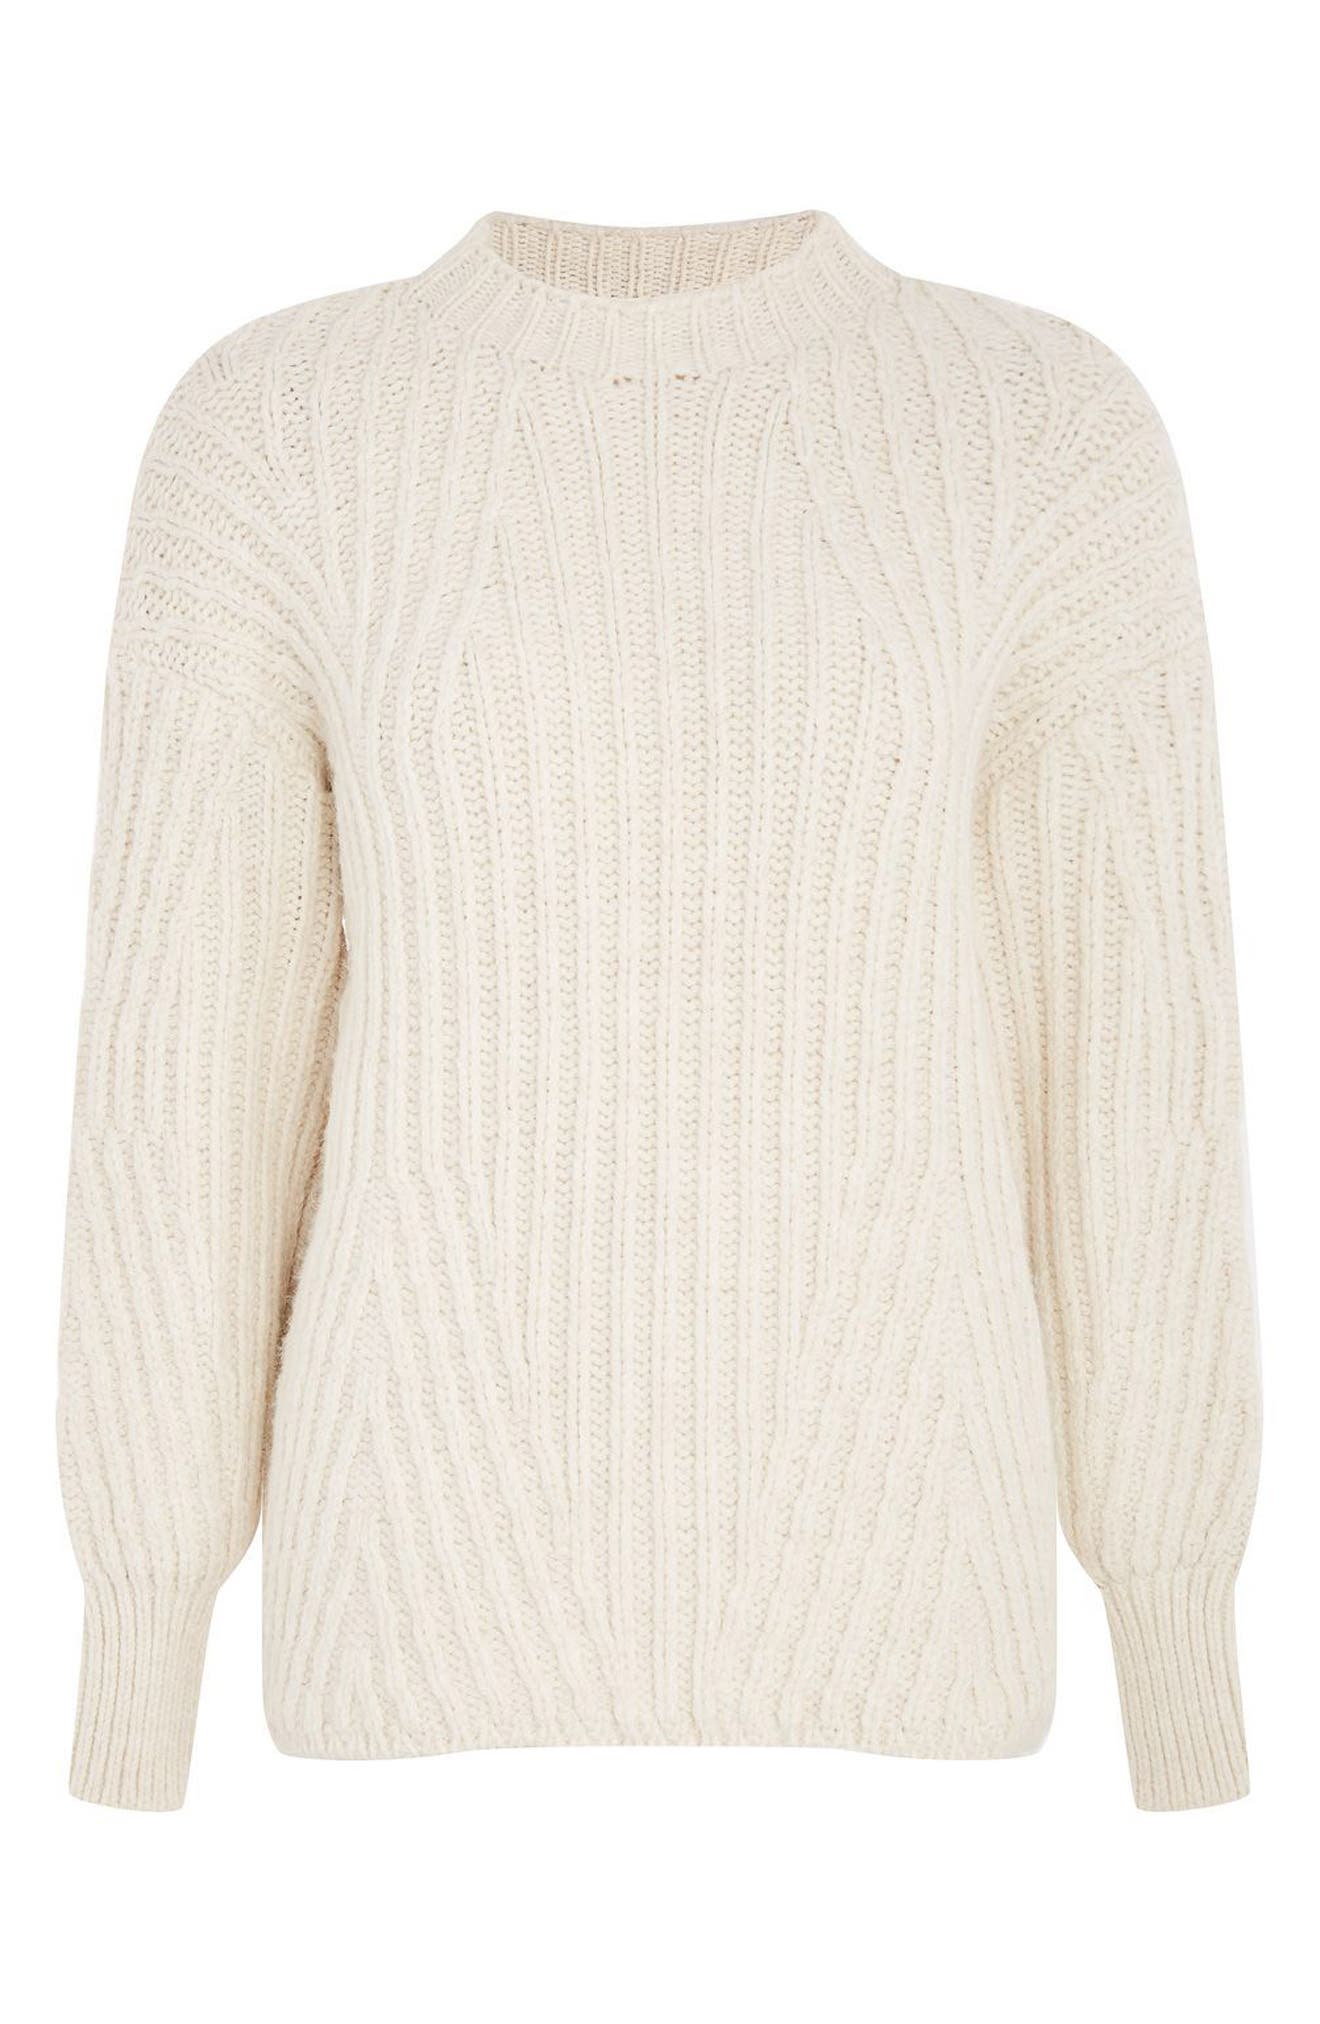 Deflected Rib Sweater,                             Alternate thumbnail 3, color,                             900